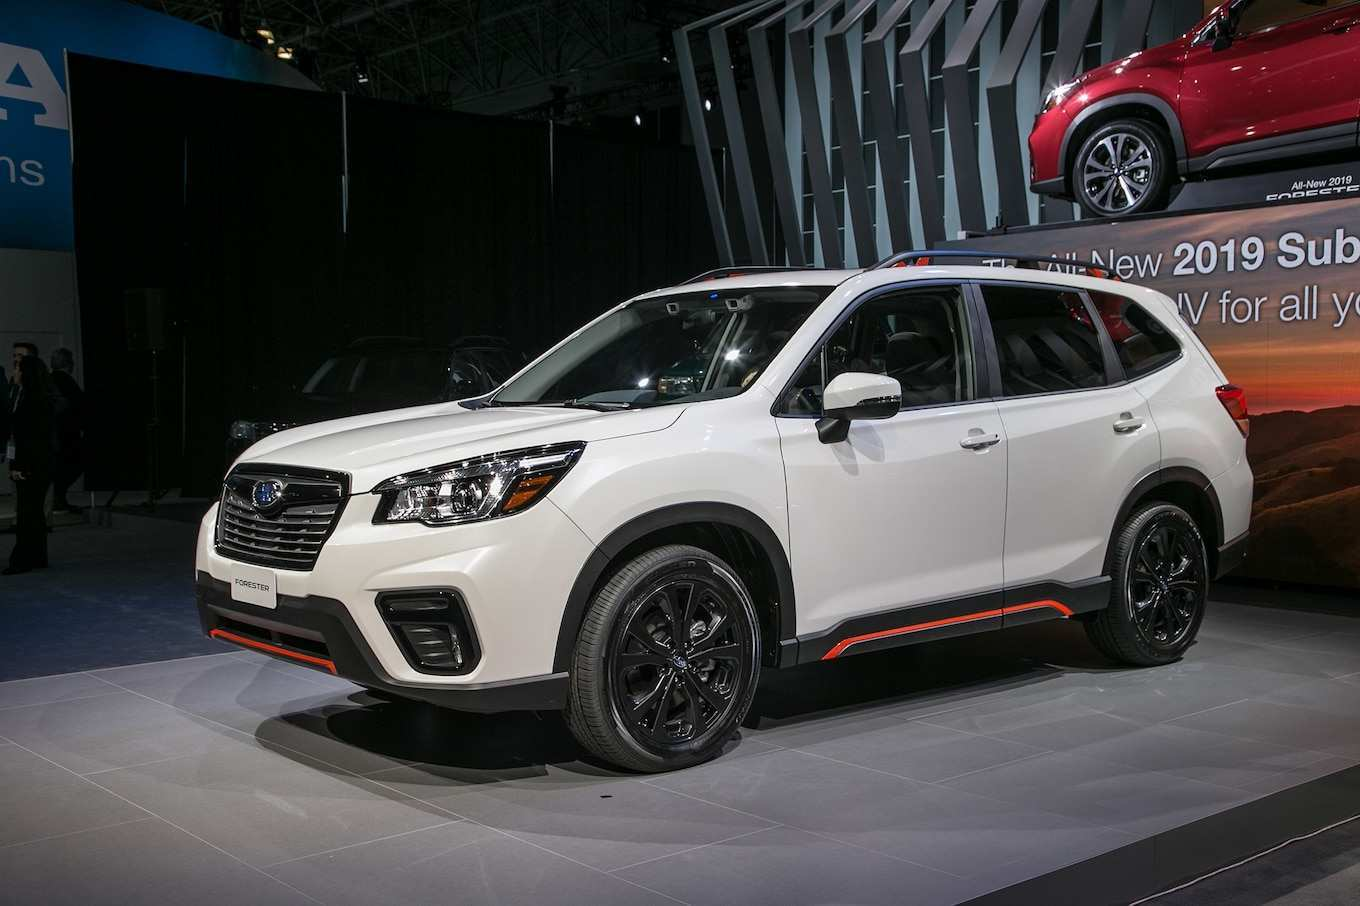 55 All New Subaru Forester 2019 Gas Mileage Redesign